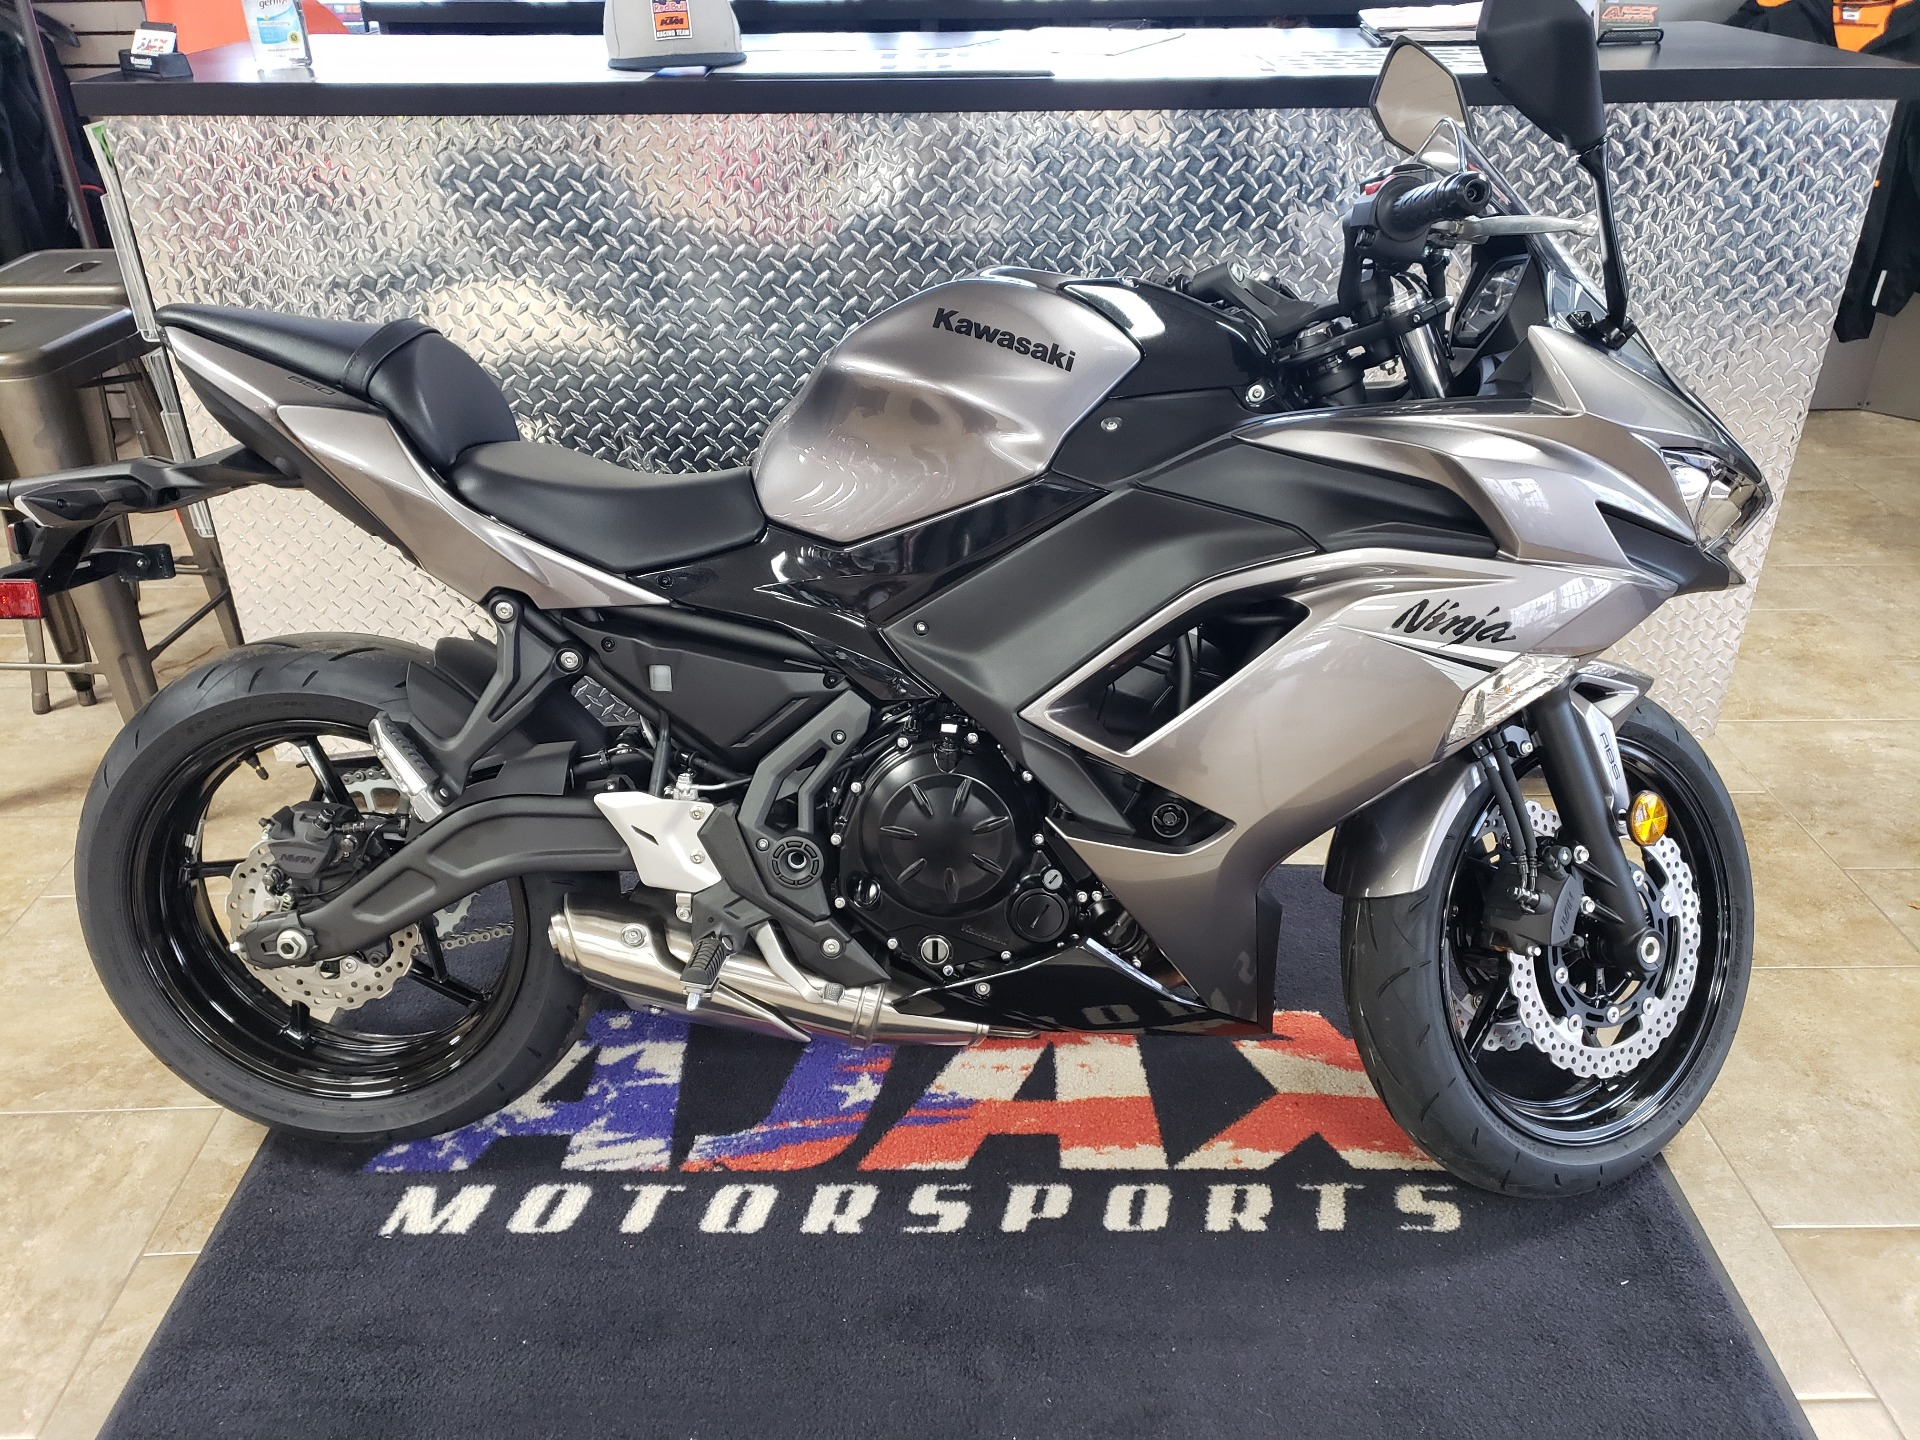 2021 Kawasaki Ninja 650 ABS in Oklahoma City, Oklahoma - Photo 2